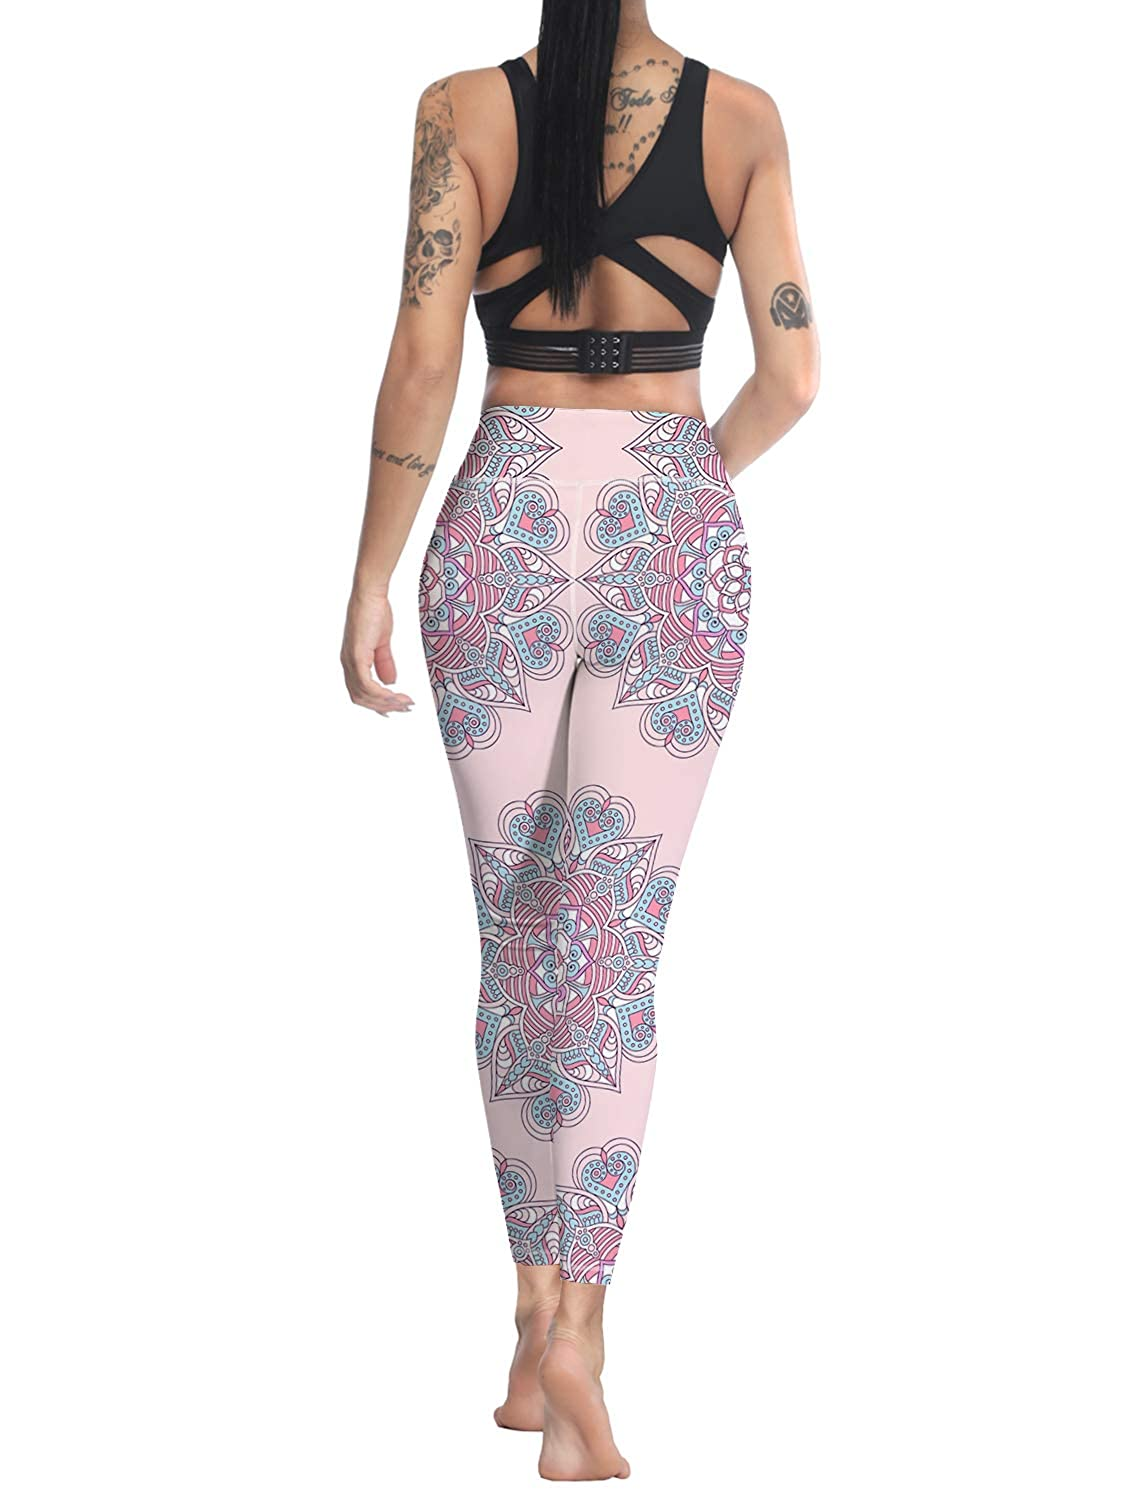 Custom Leggings Women High Waist Soft Yoga Workout Stretch Printed Vintage Pattern Stretchy Capris Pants